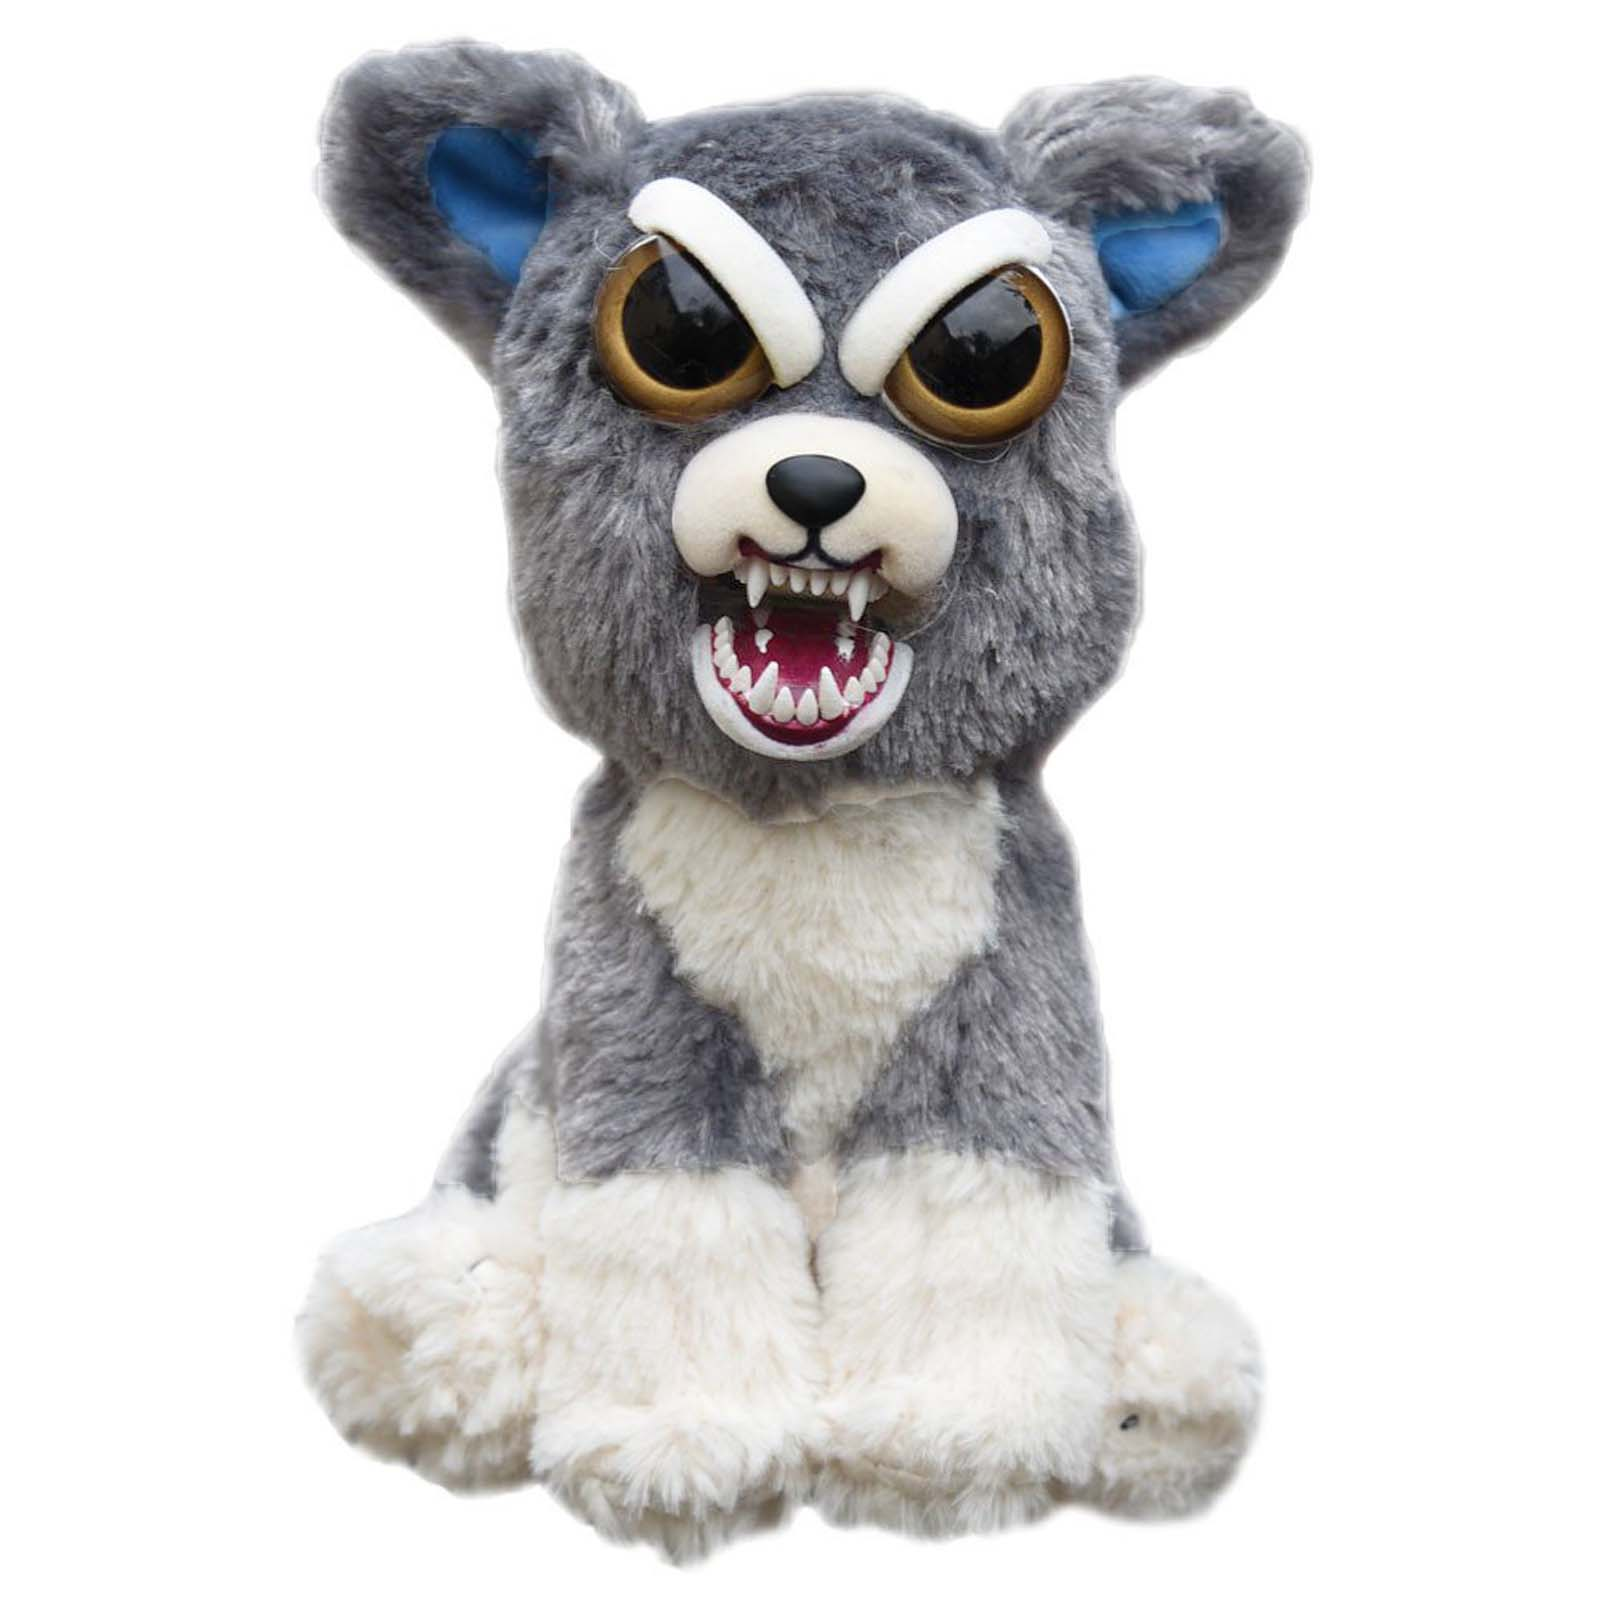 Feisty Pets Soft Plush Stuffed Scary Face Must Have Toy Animal With Attitude eBay